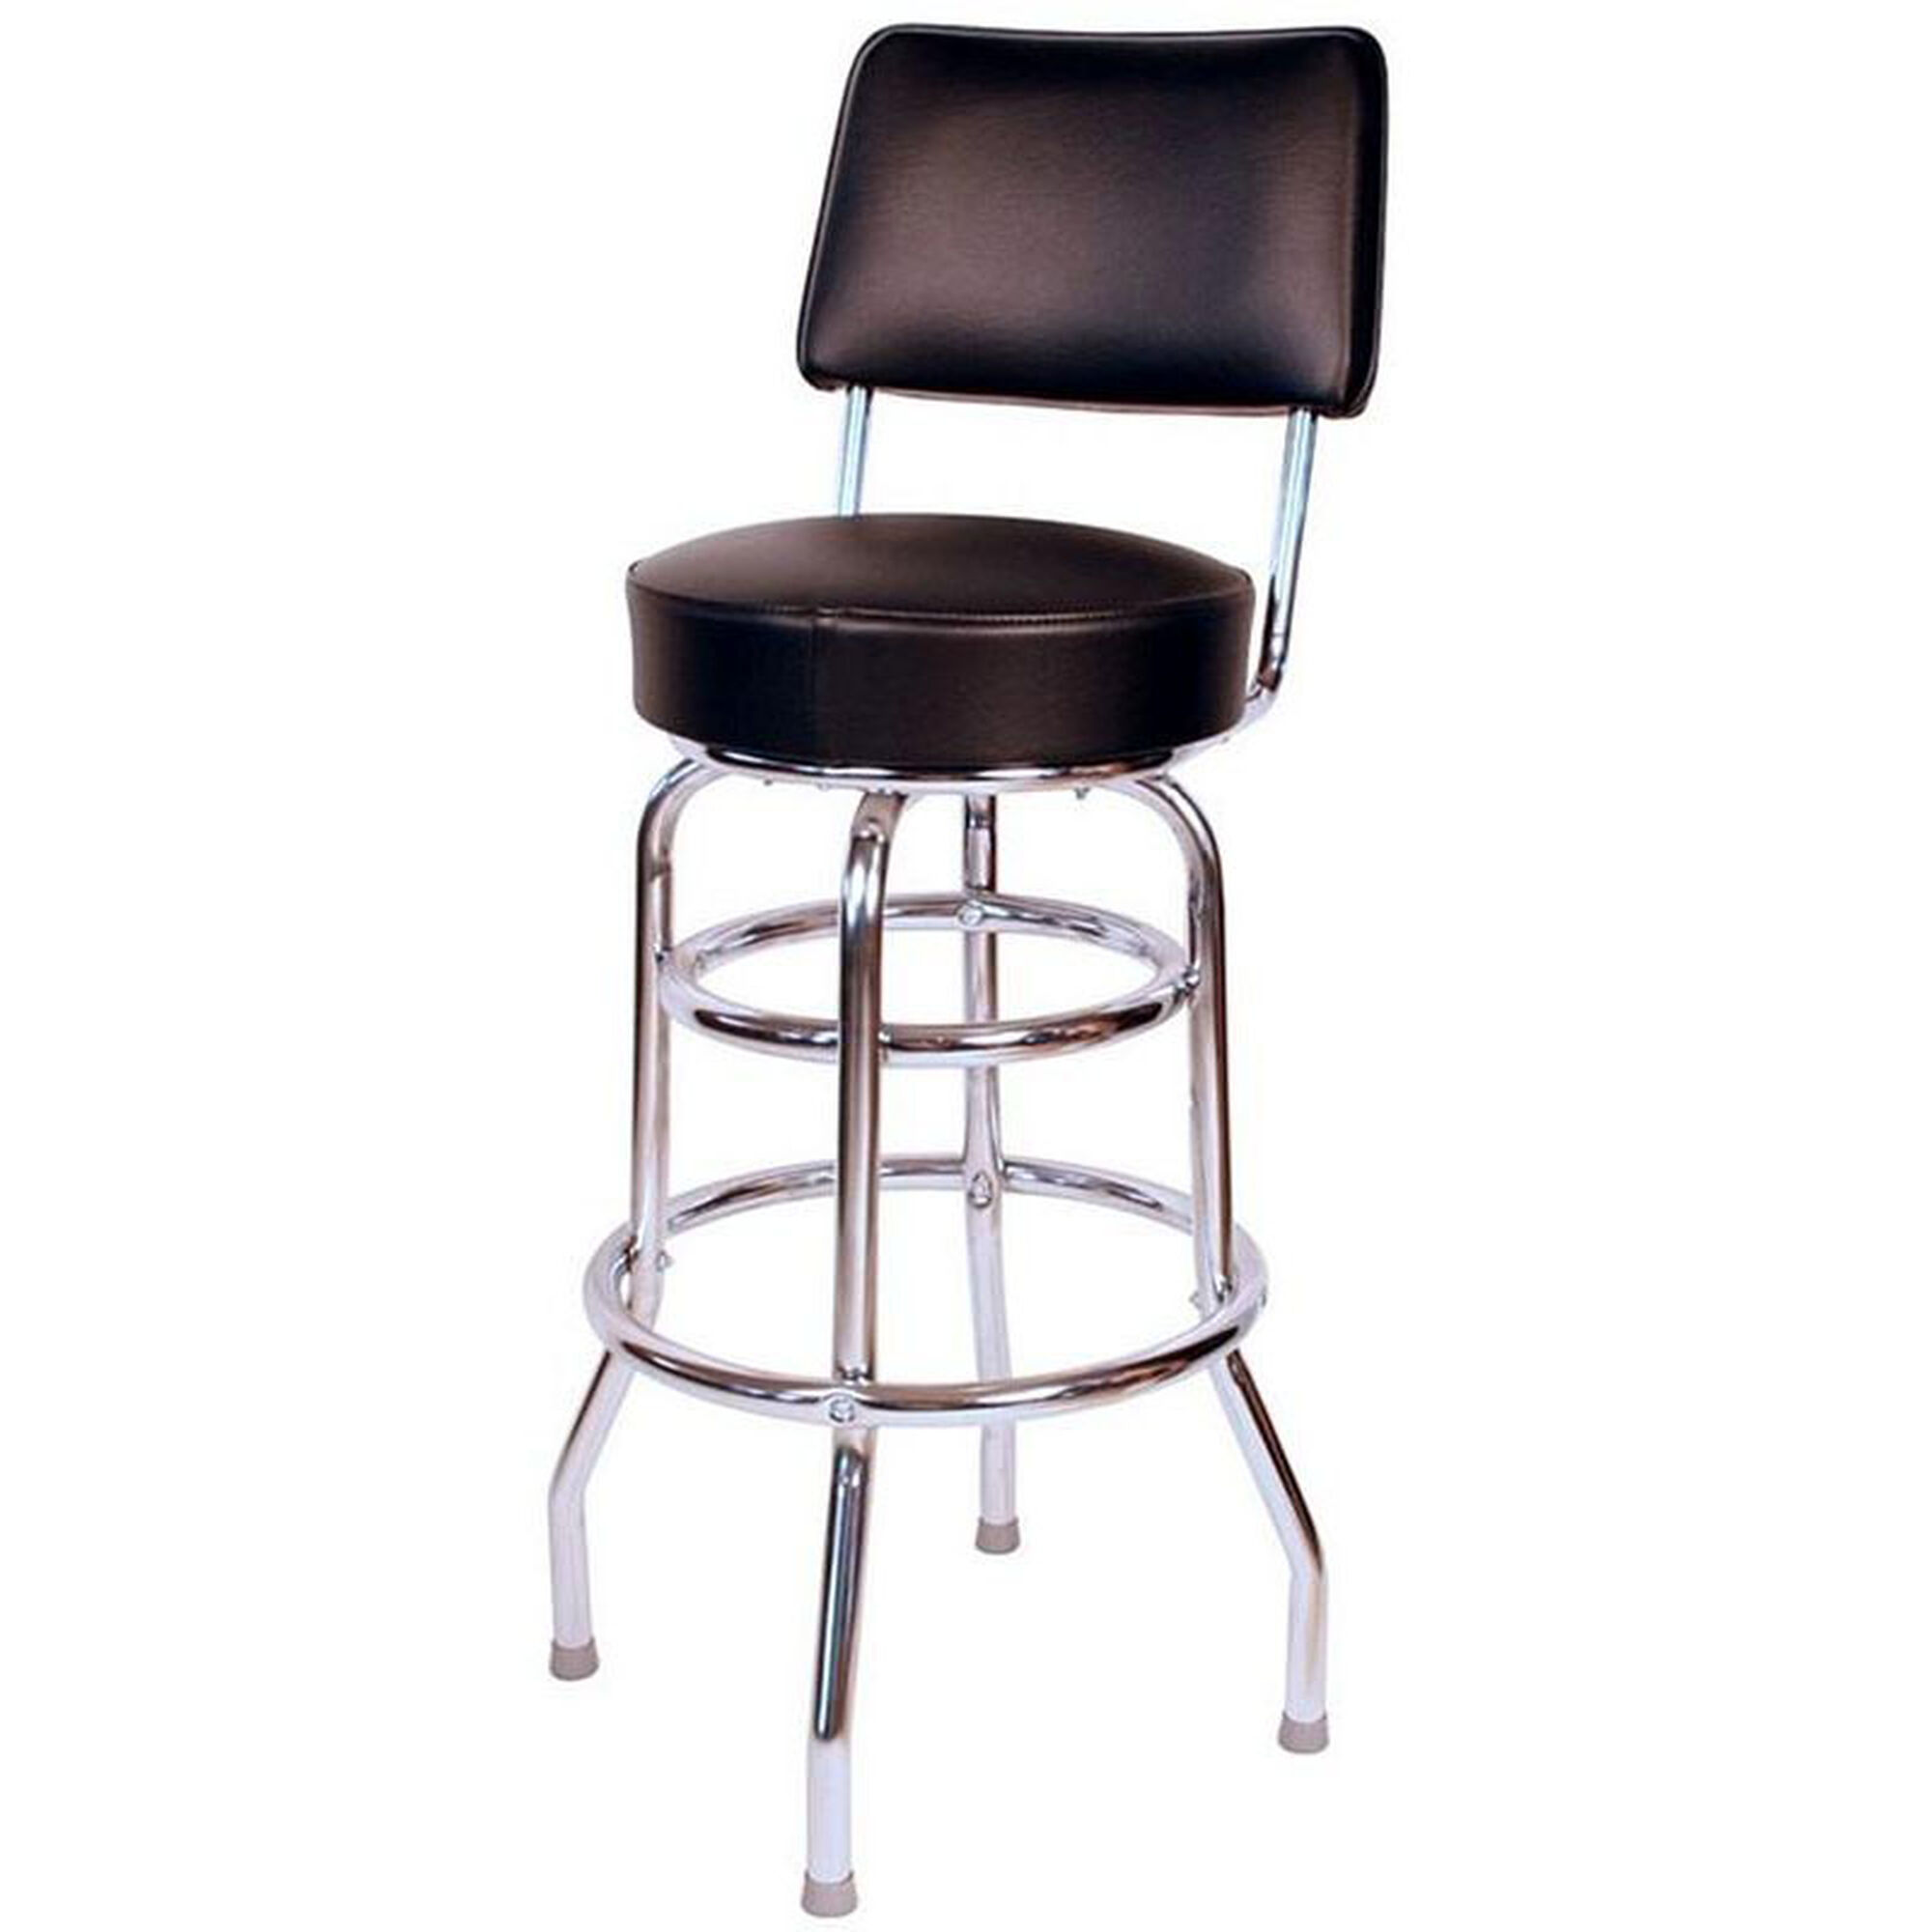 Pleasant Retro Style Double Ring Chrome Frame 30 Swivel Bar Stool With Backrest And Padded Seat Black Vinyl Uwap Interior Chair Design Uwaporg